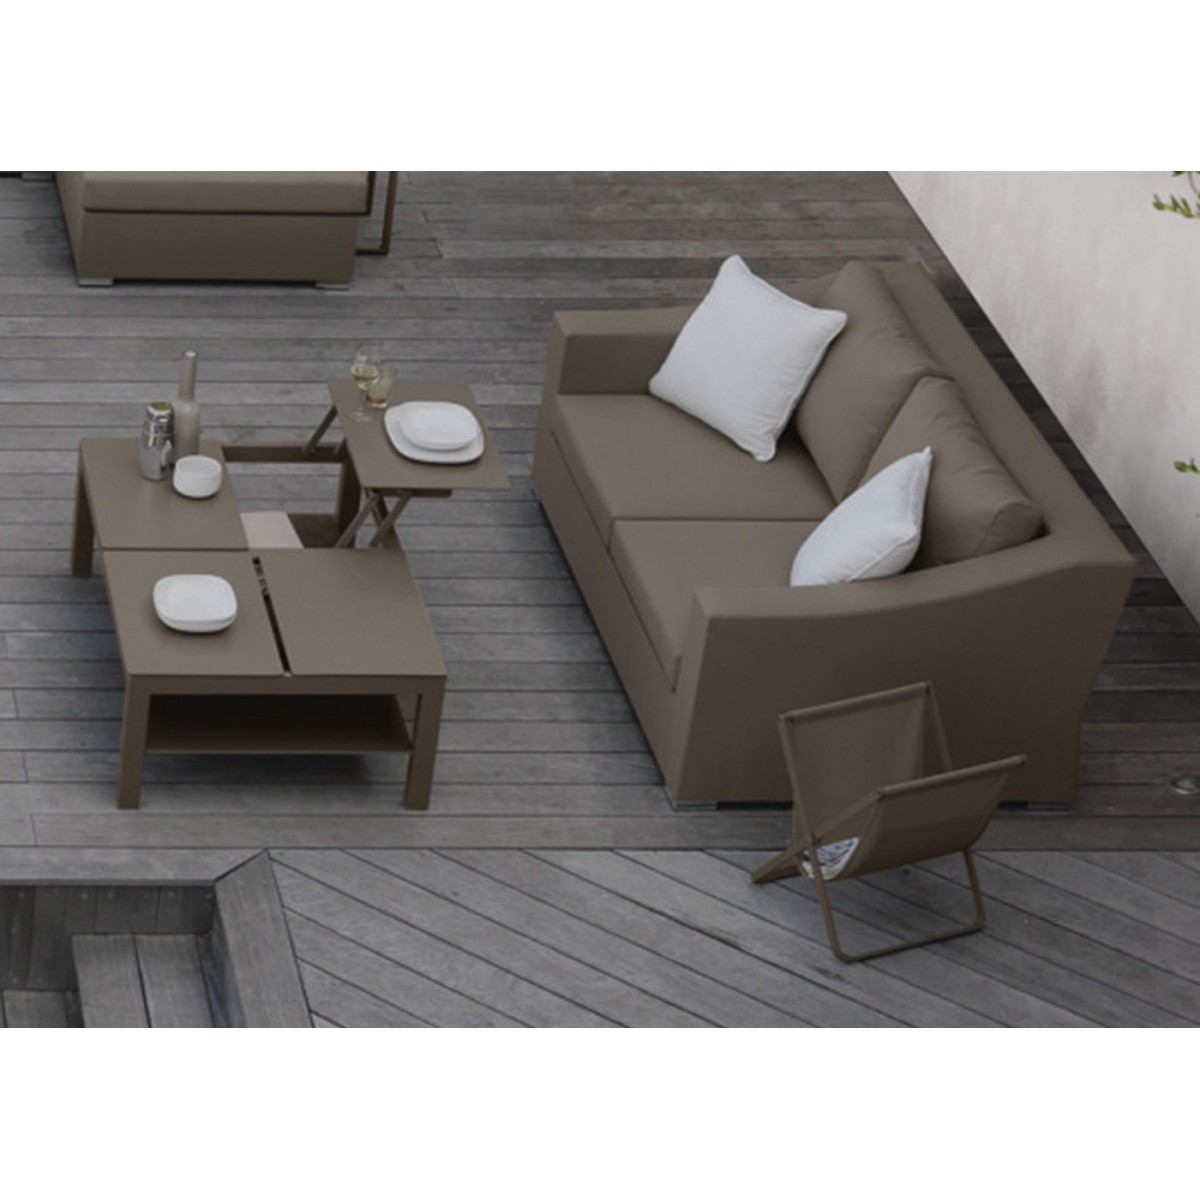 Canap de jardin confortable de qualit chic par talenti for Canape contemporain